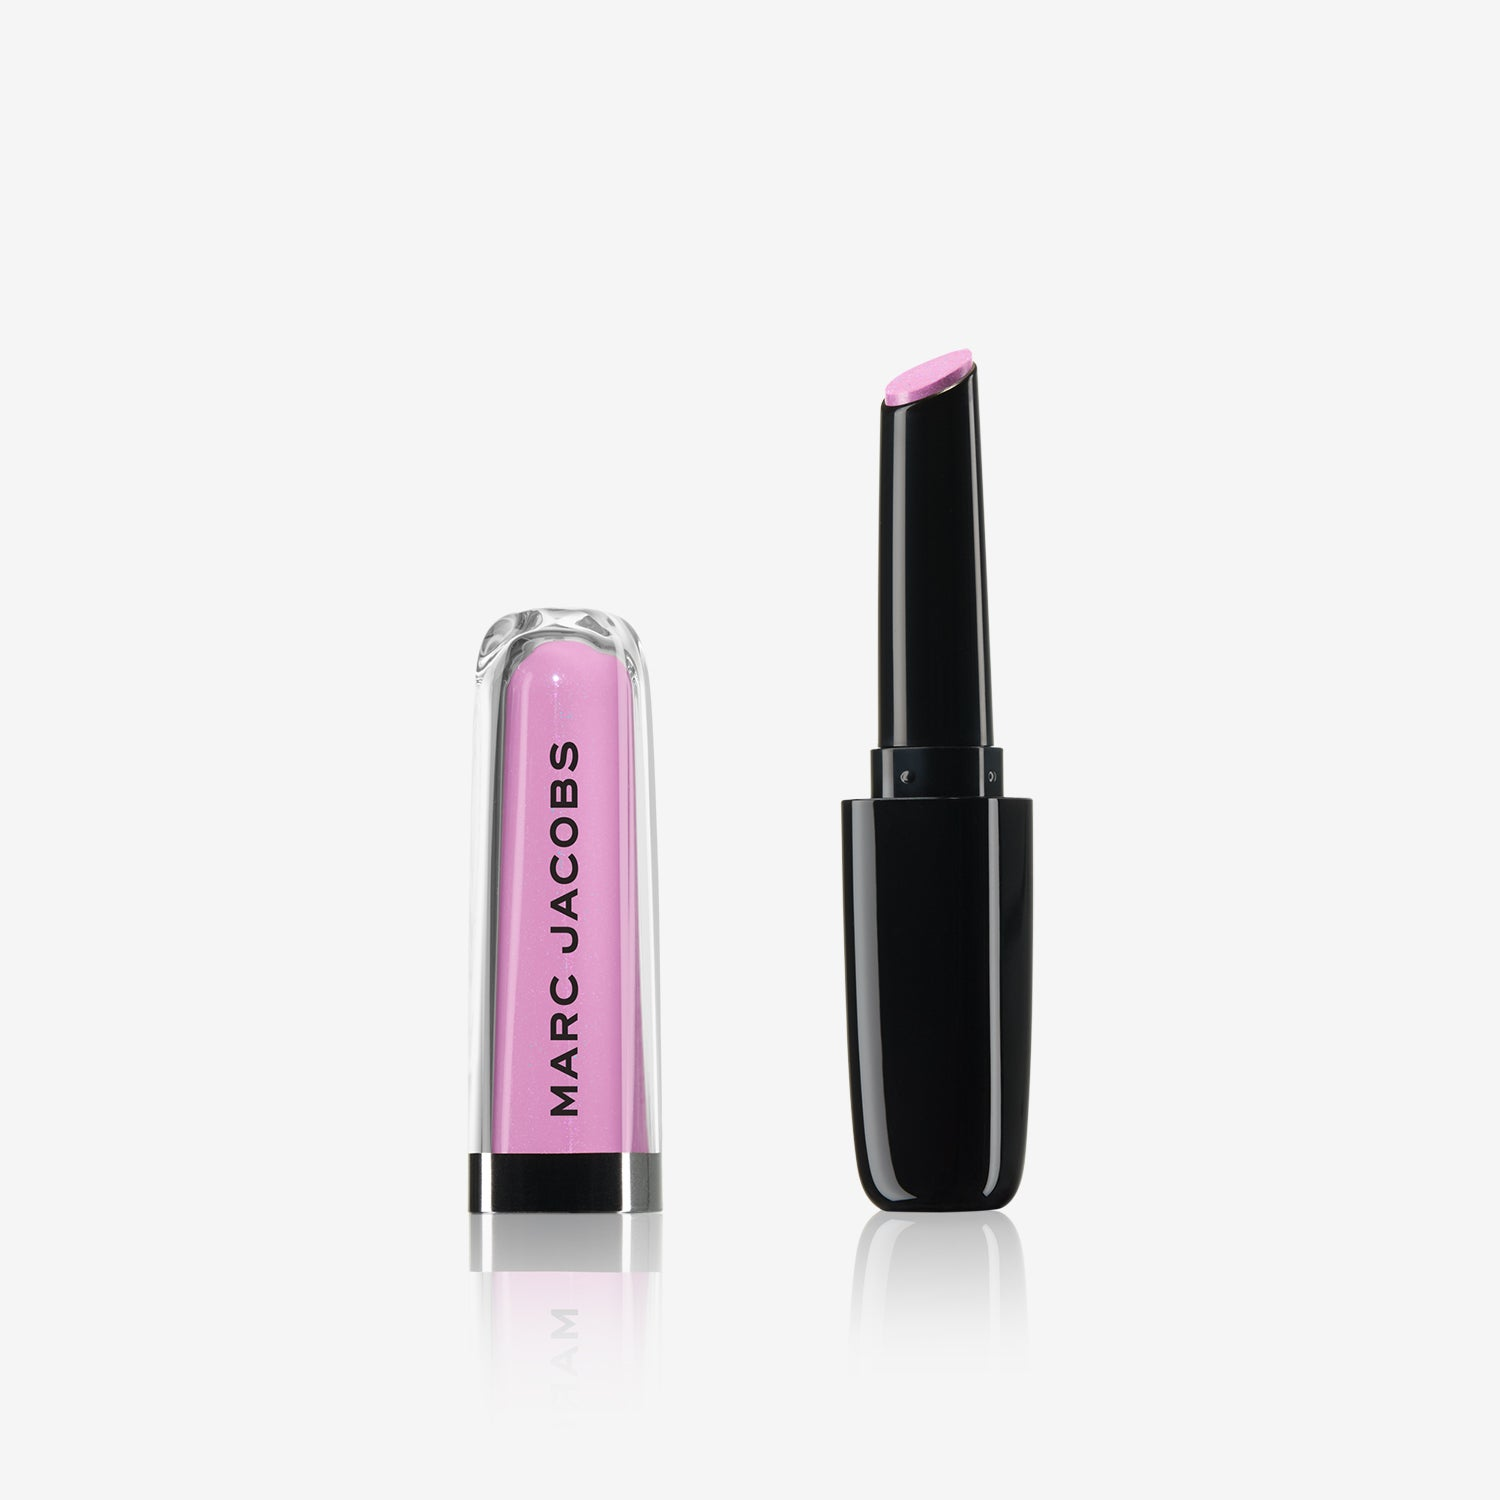 Marc Jacobs Beauty Enamored (With Pride) Hydrating Lip Gloss Stick in Hips Don't Lilac